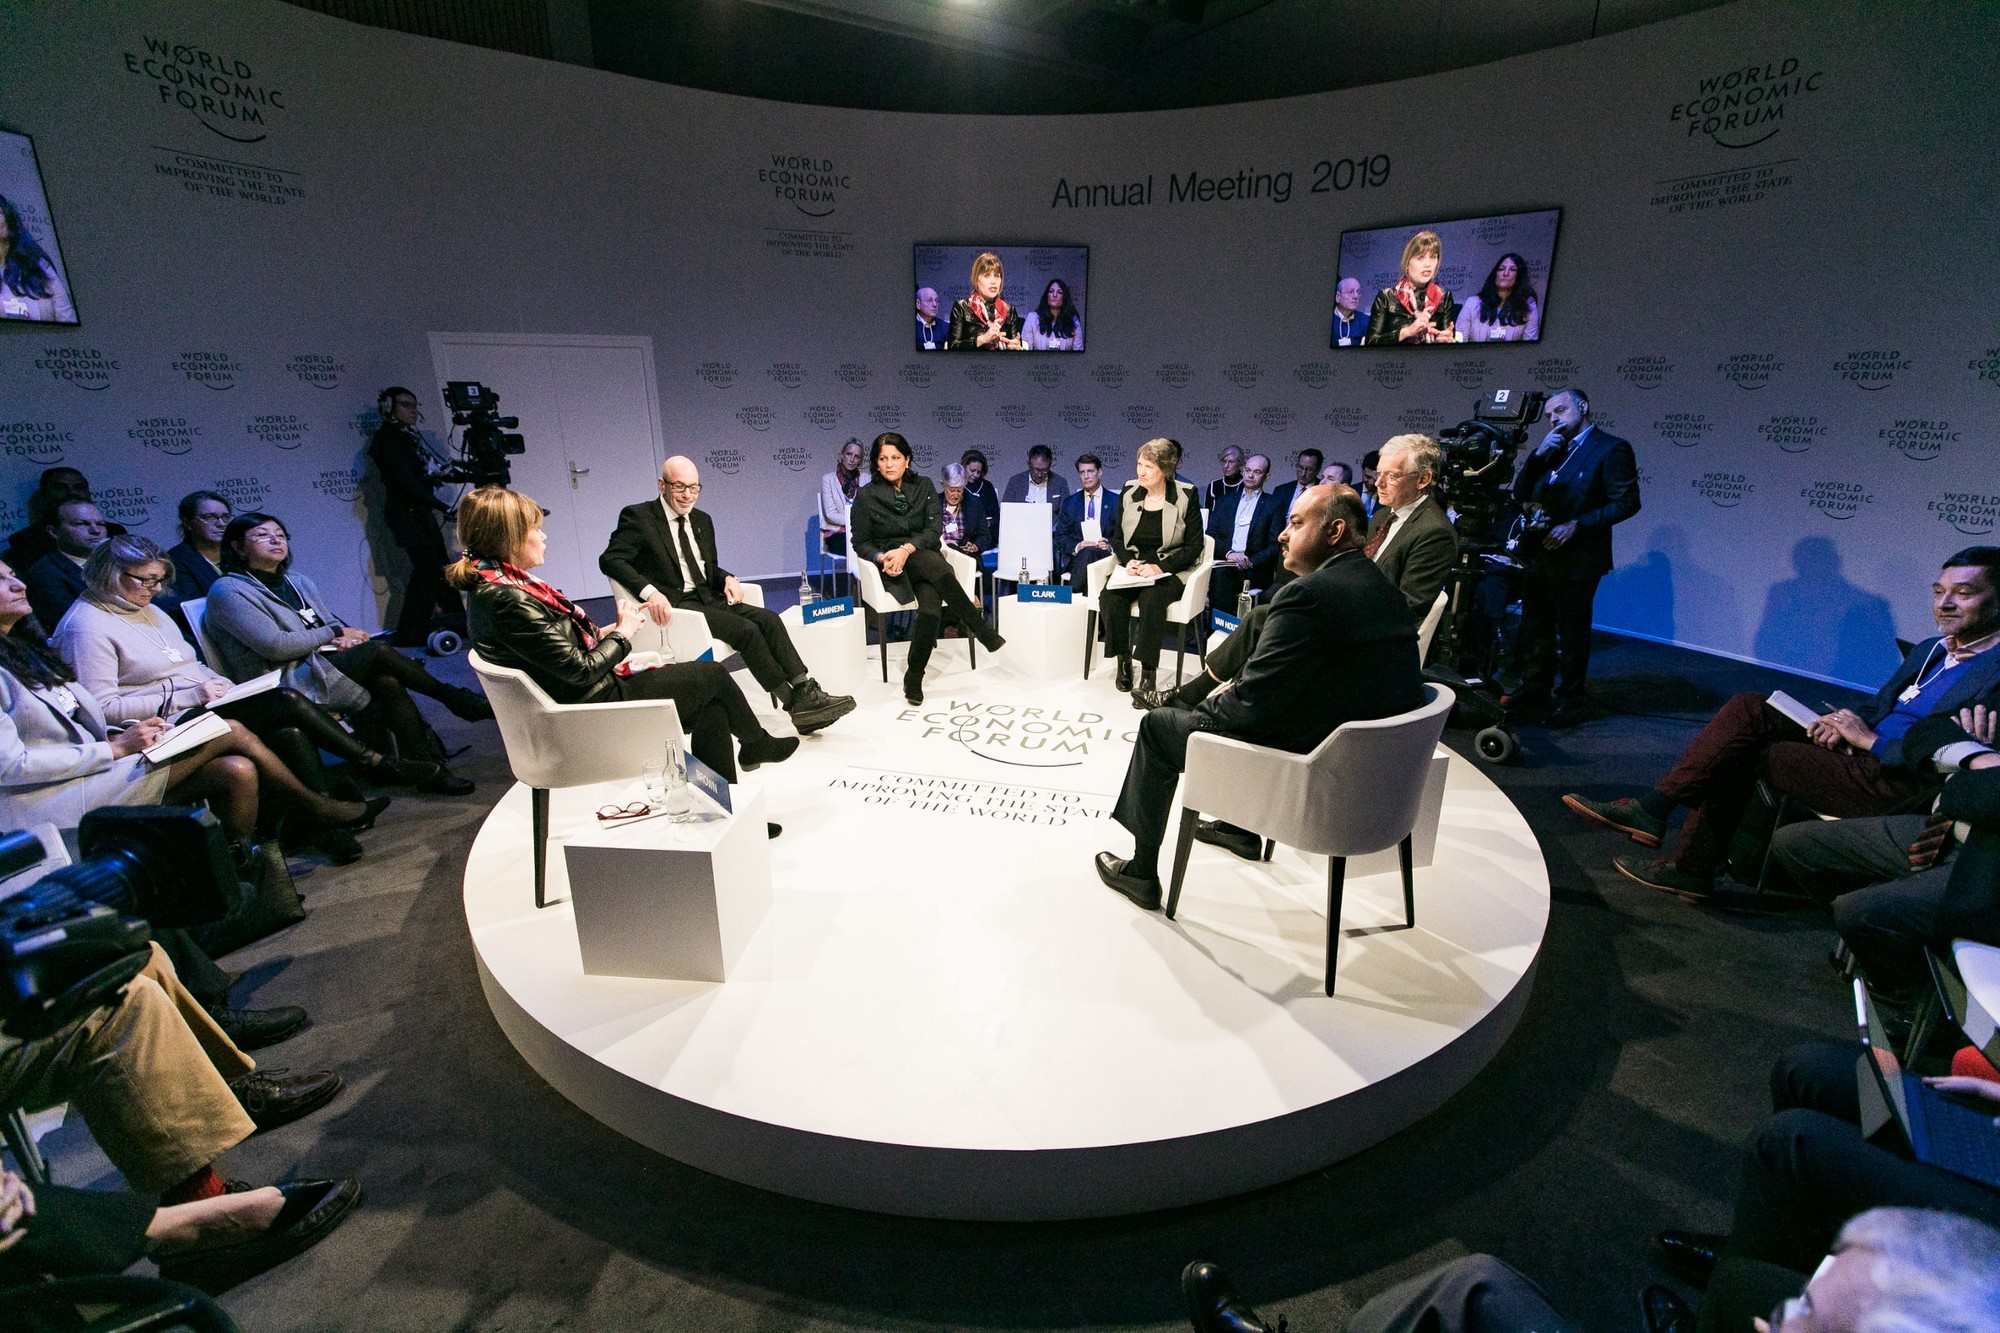 People sitting and talking on a round stage with an audience.